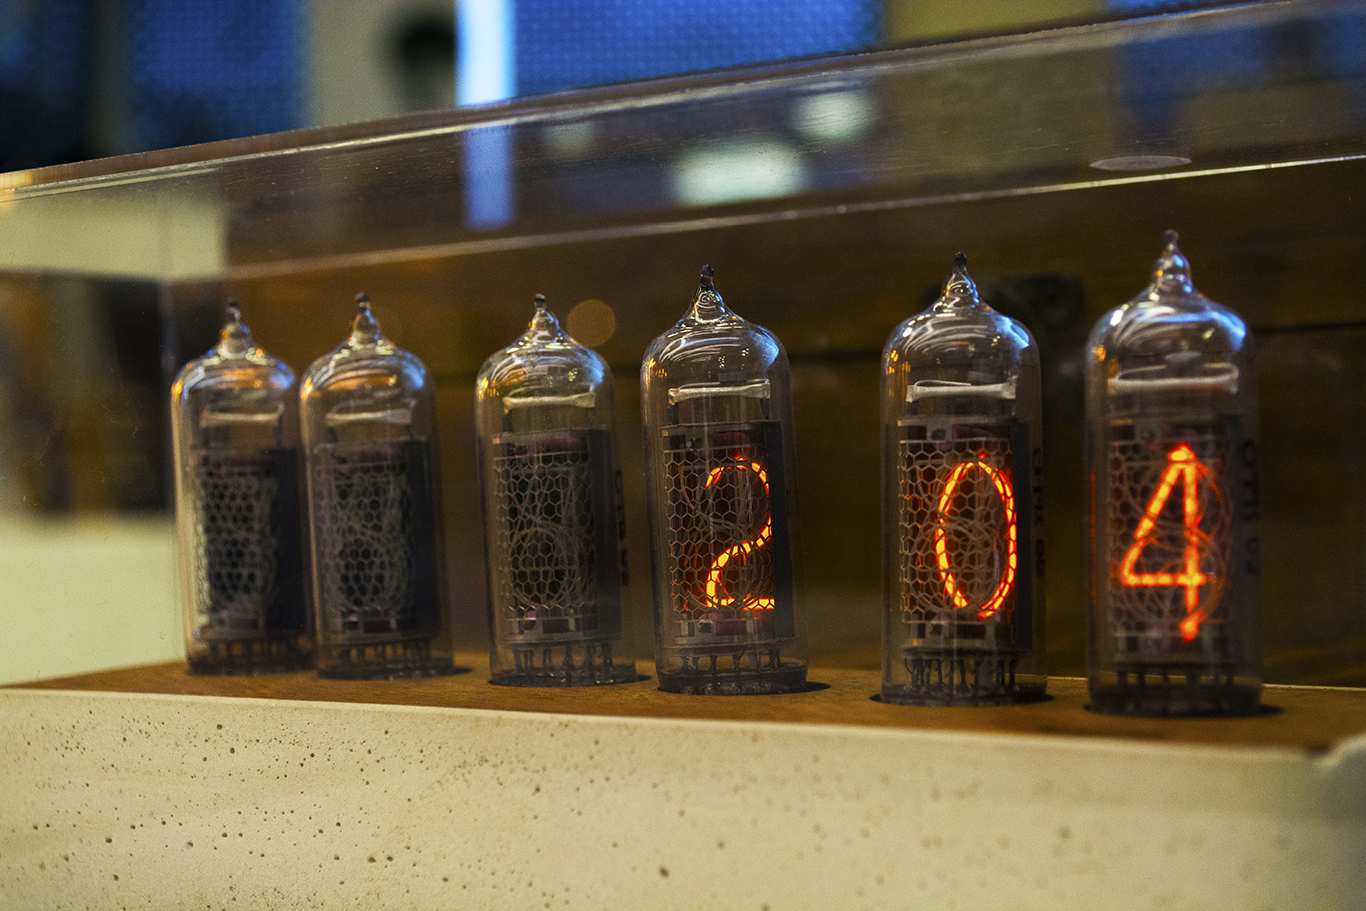 A Nixie tube clock on display at the Dongdaemun Design Plaza in Seoul, South Korea.  (CHRISTOPHER CAMERON/THE STATESMAN)